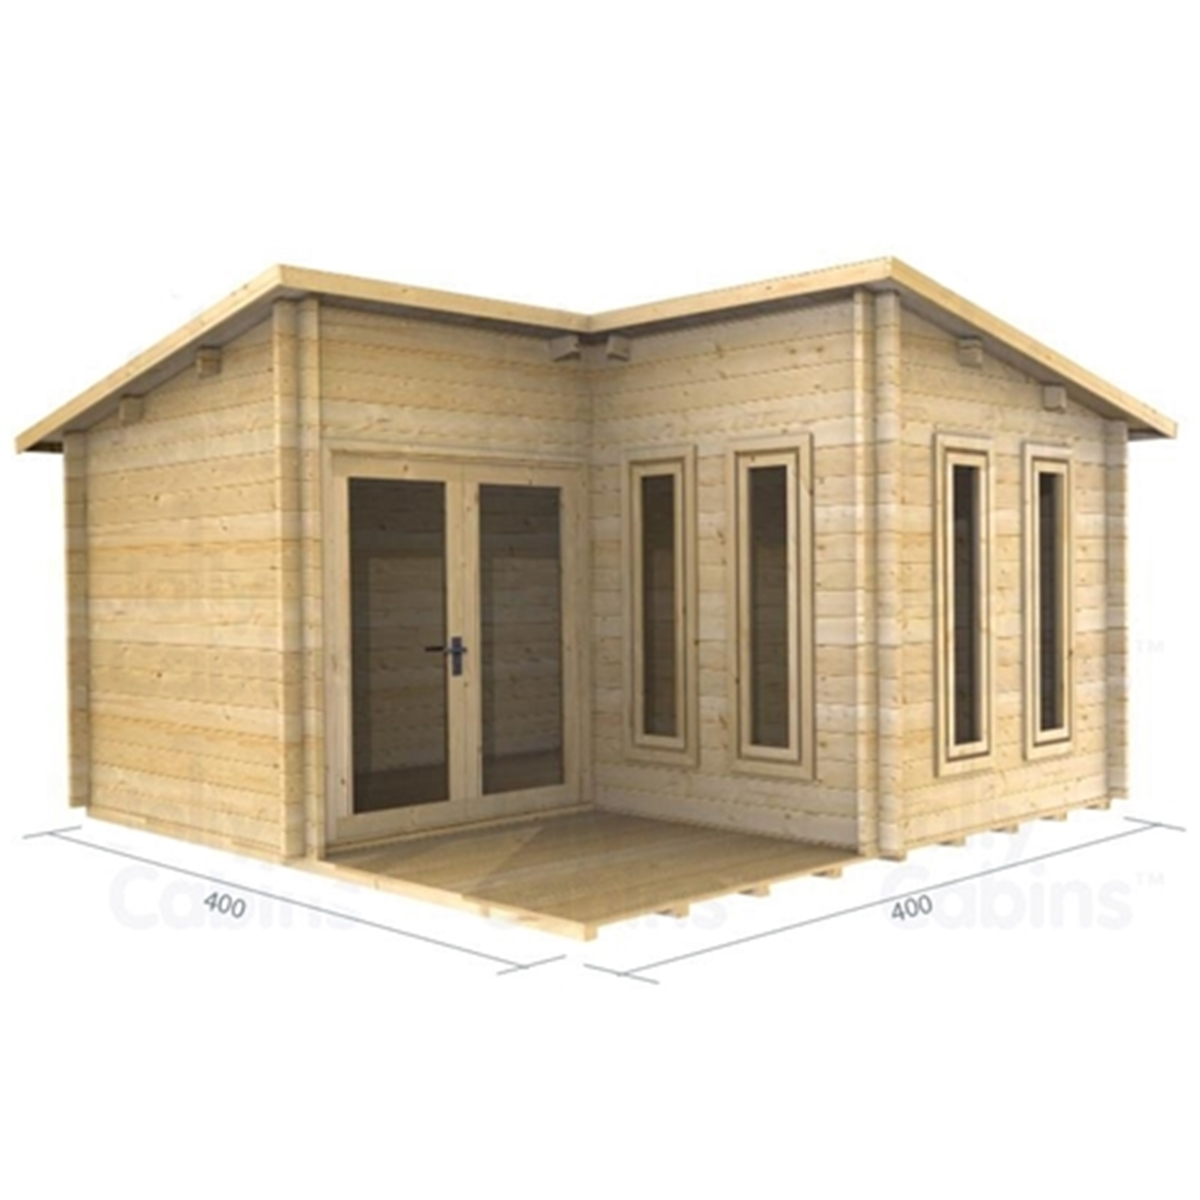 4m X 4m 13 X 13 Pent Style Log Cabin 2054 Double